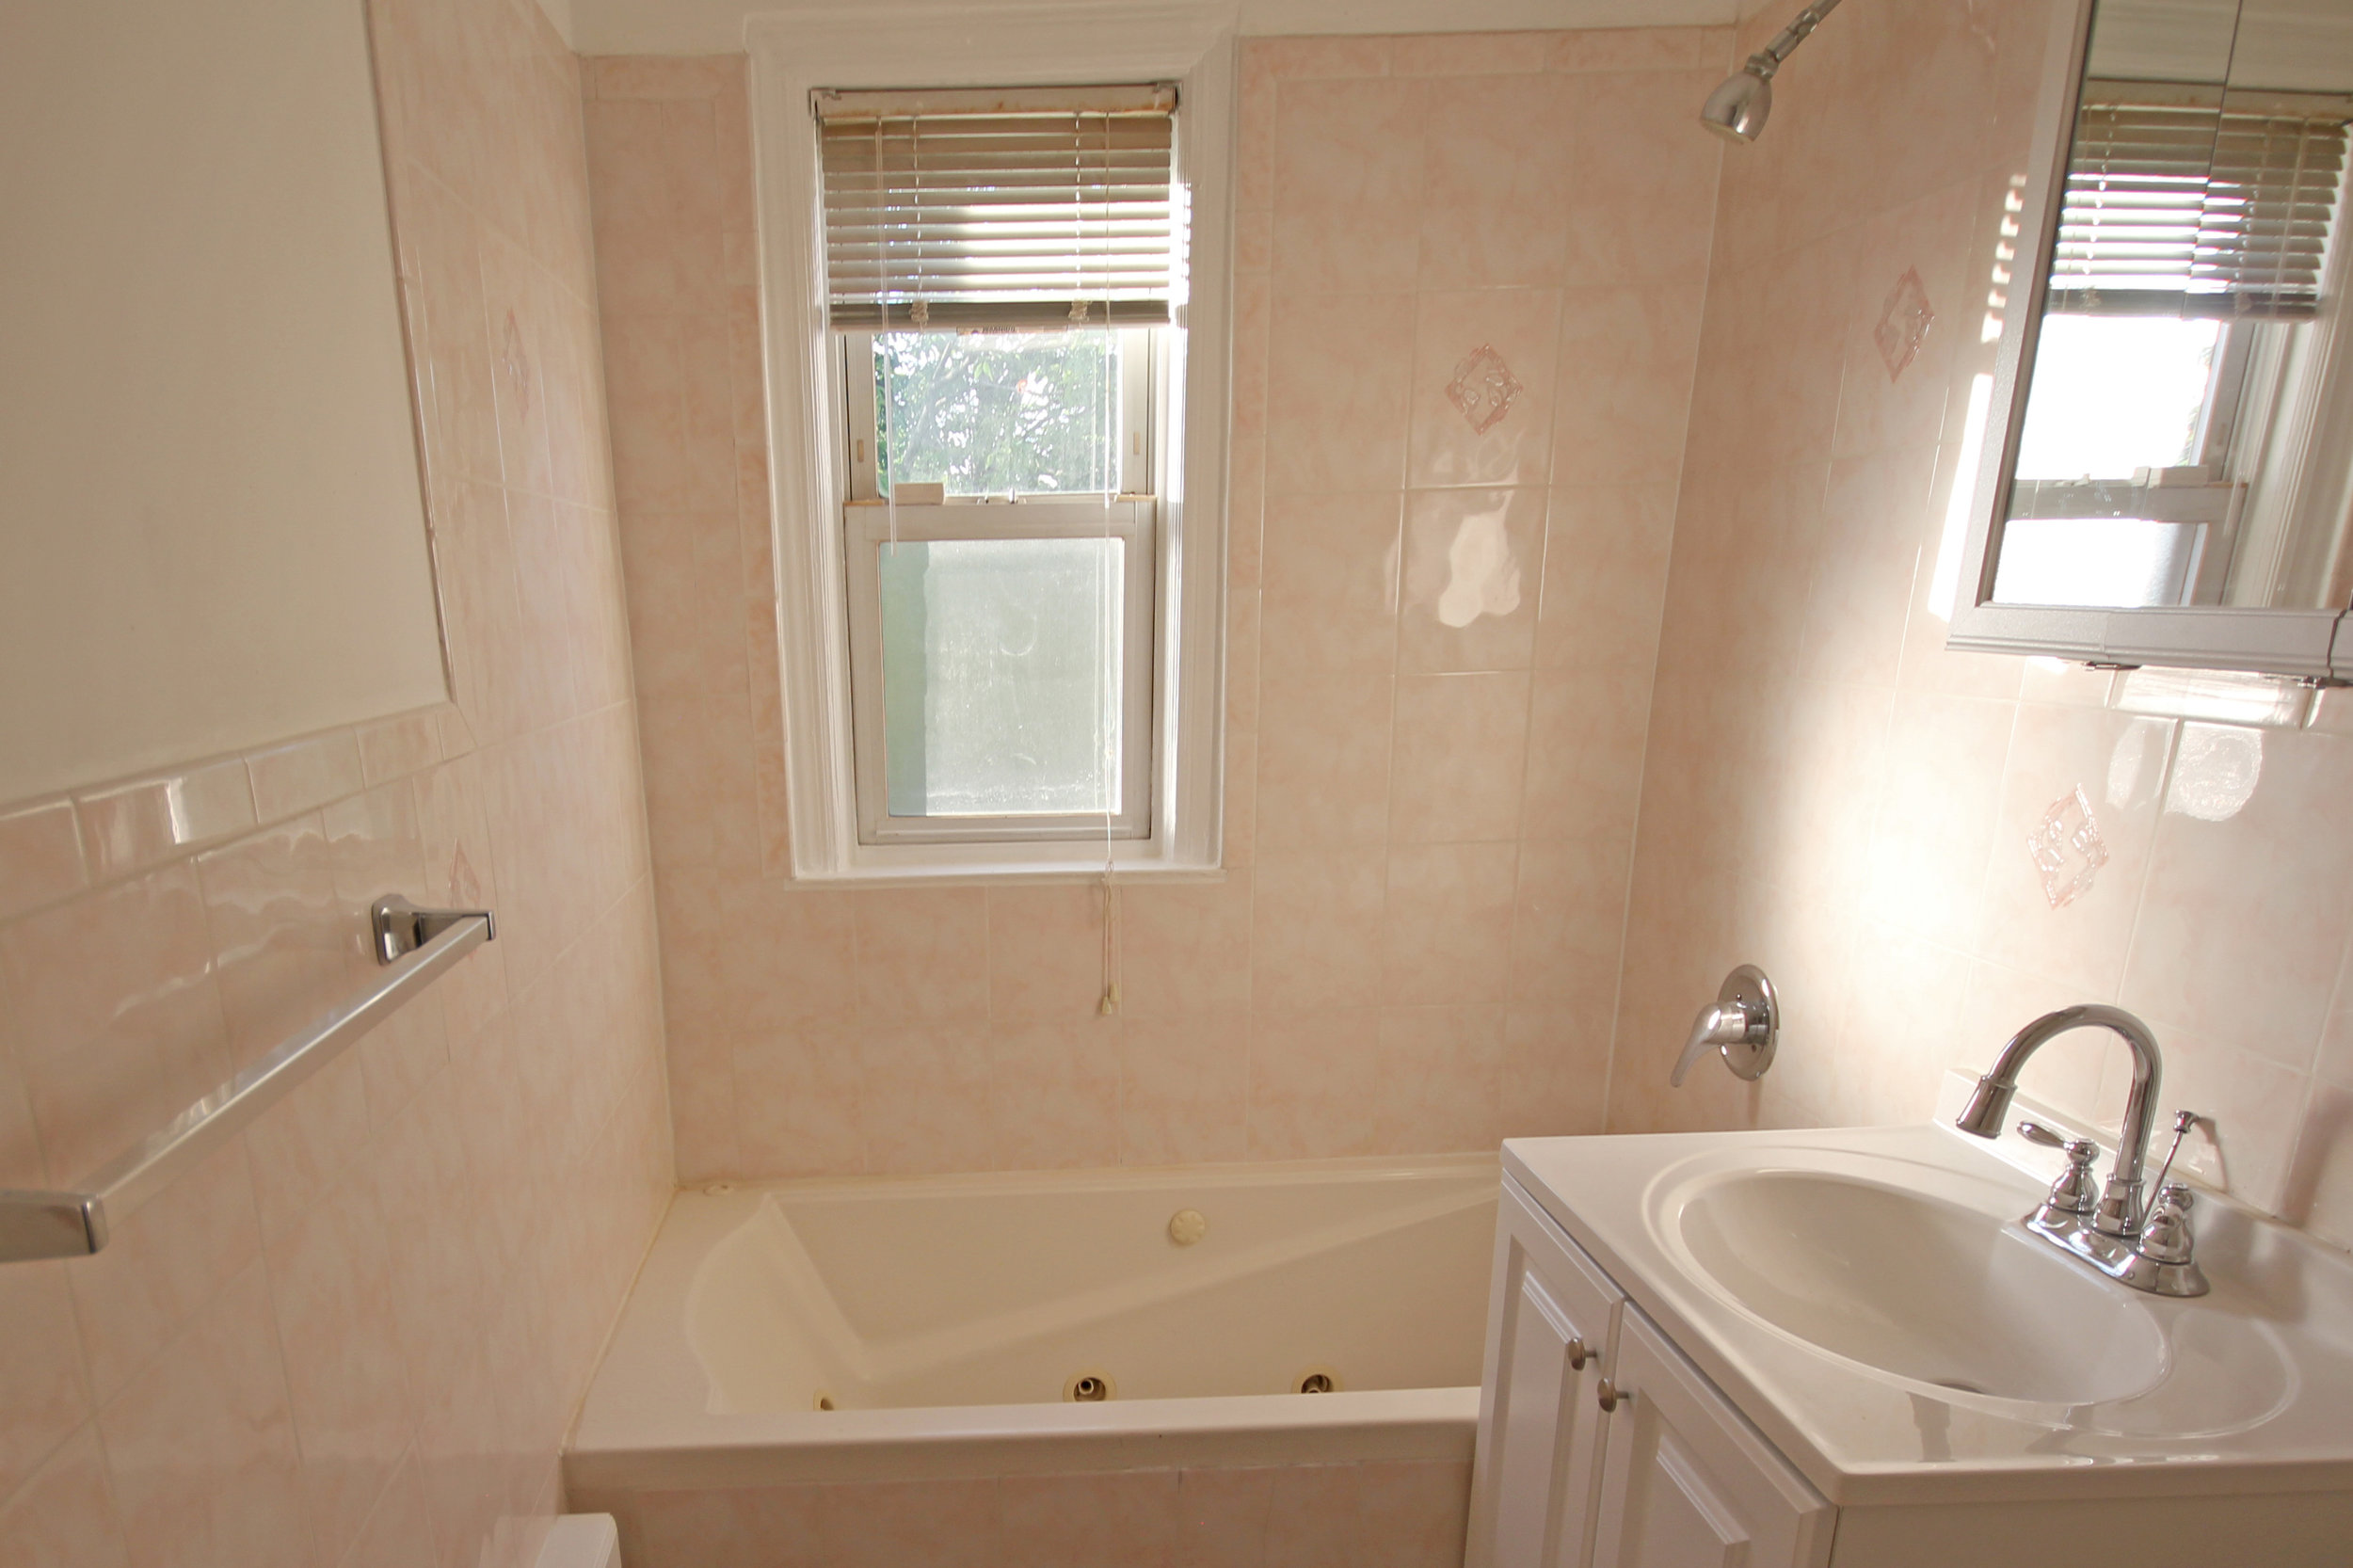 150-31 78th Avenue-bathroom.jpg